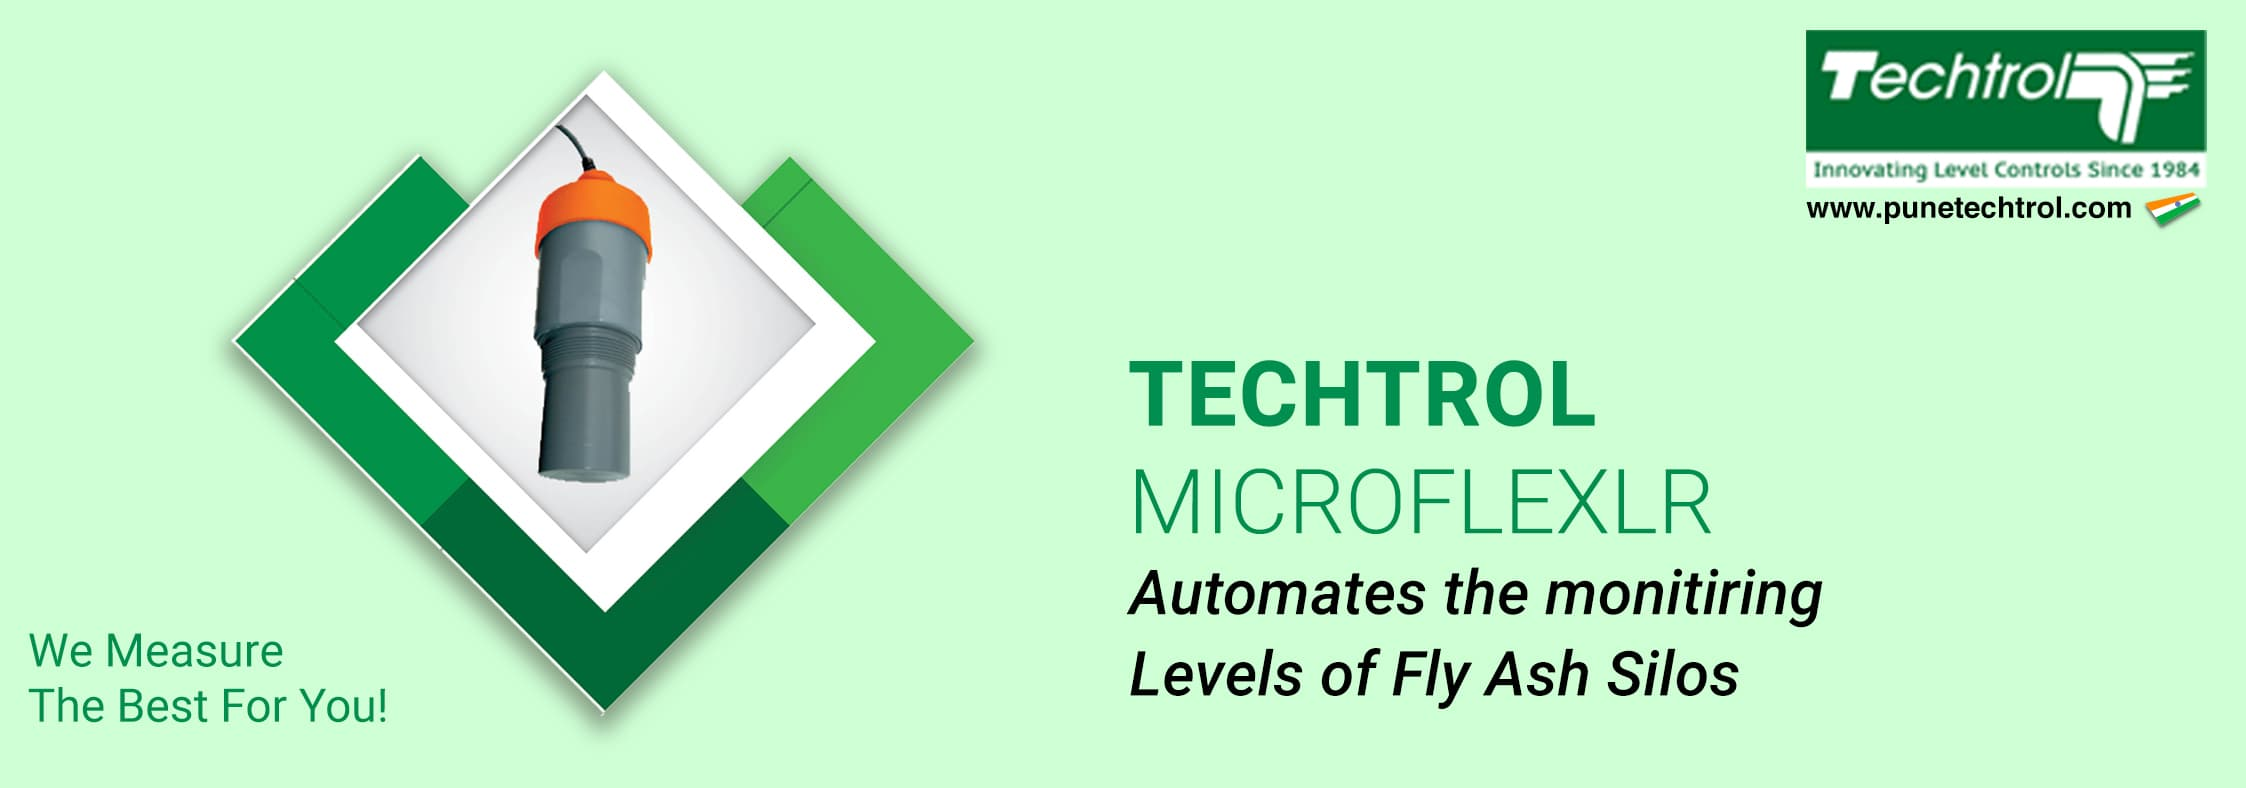 Techtrol Microflex LRon Fly Ash Silosof The Uttam Galva Steels